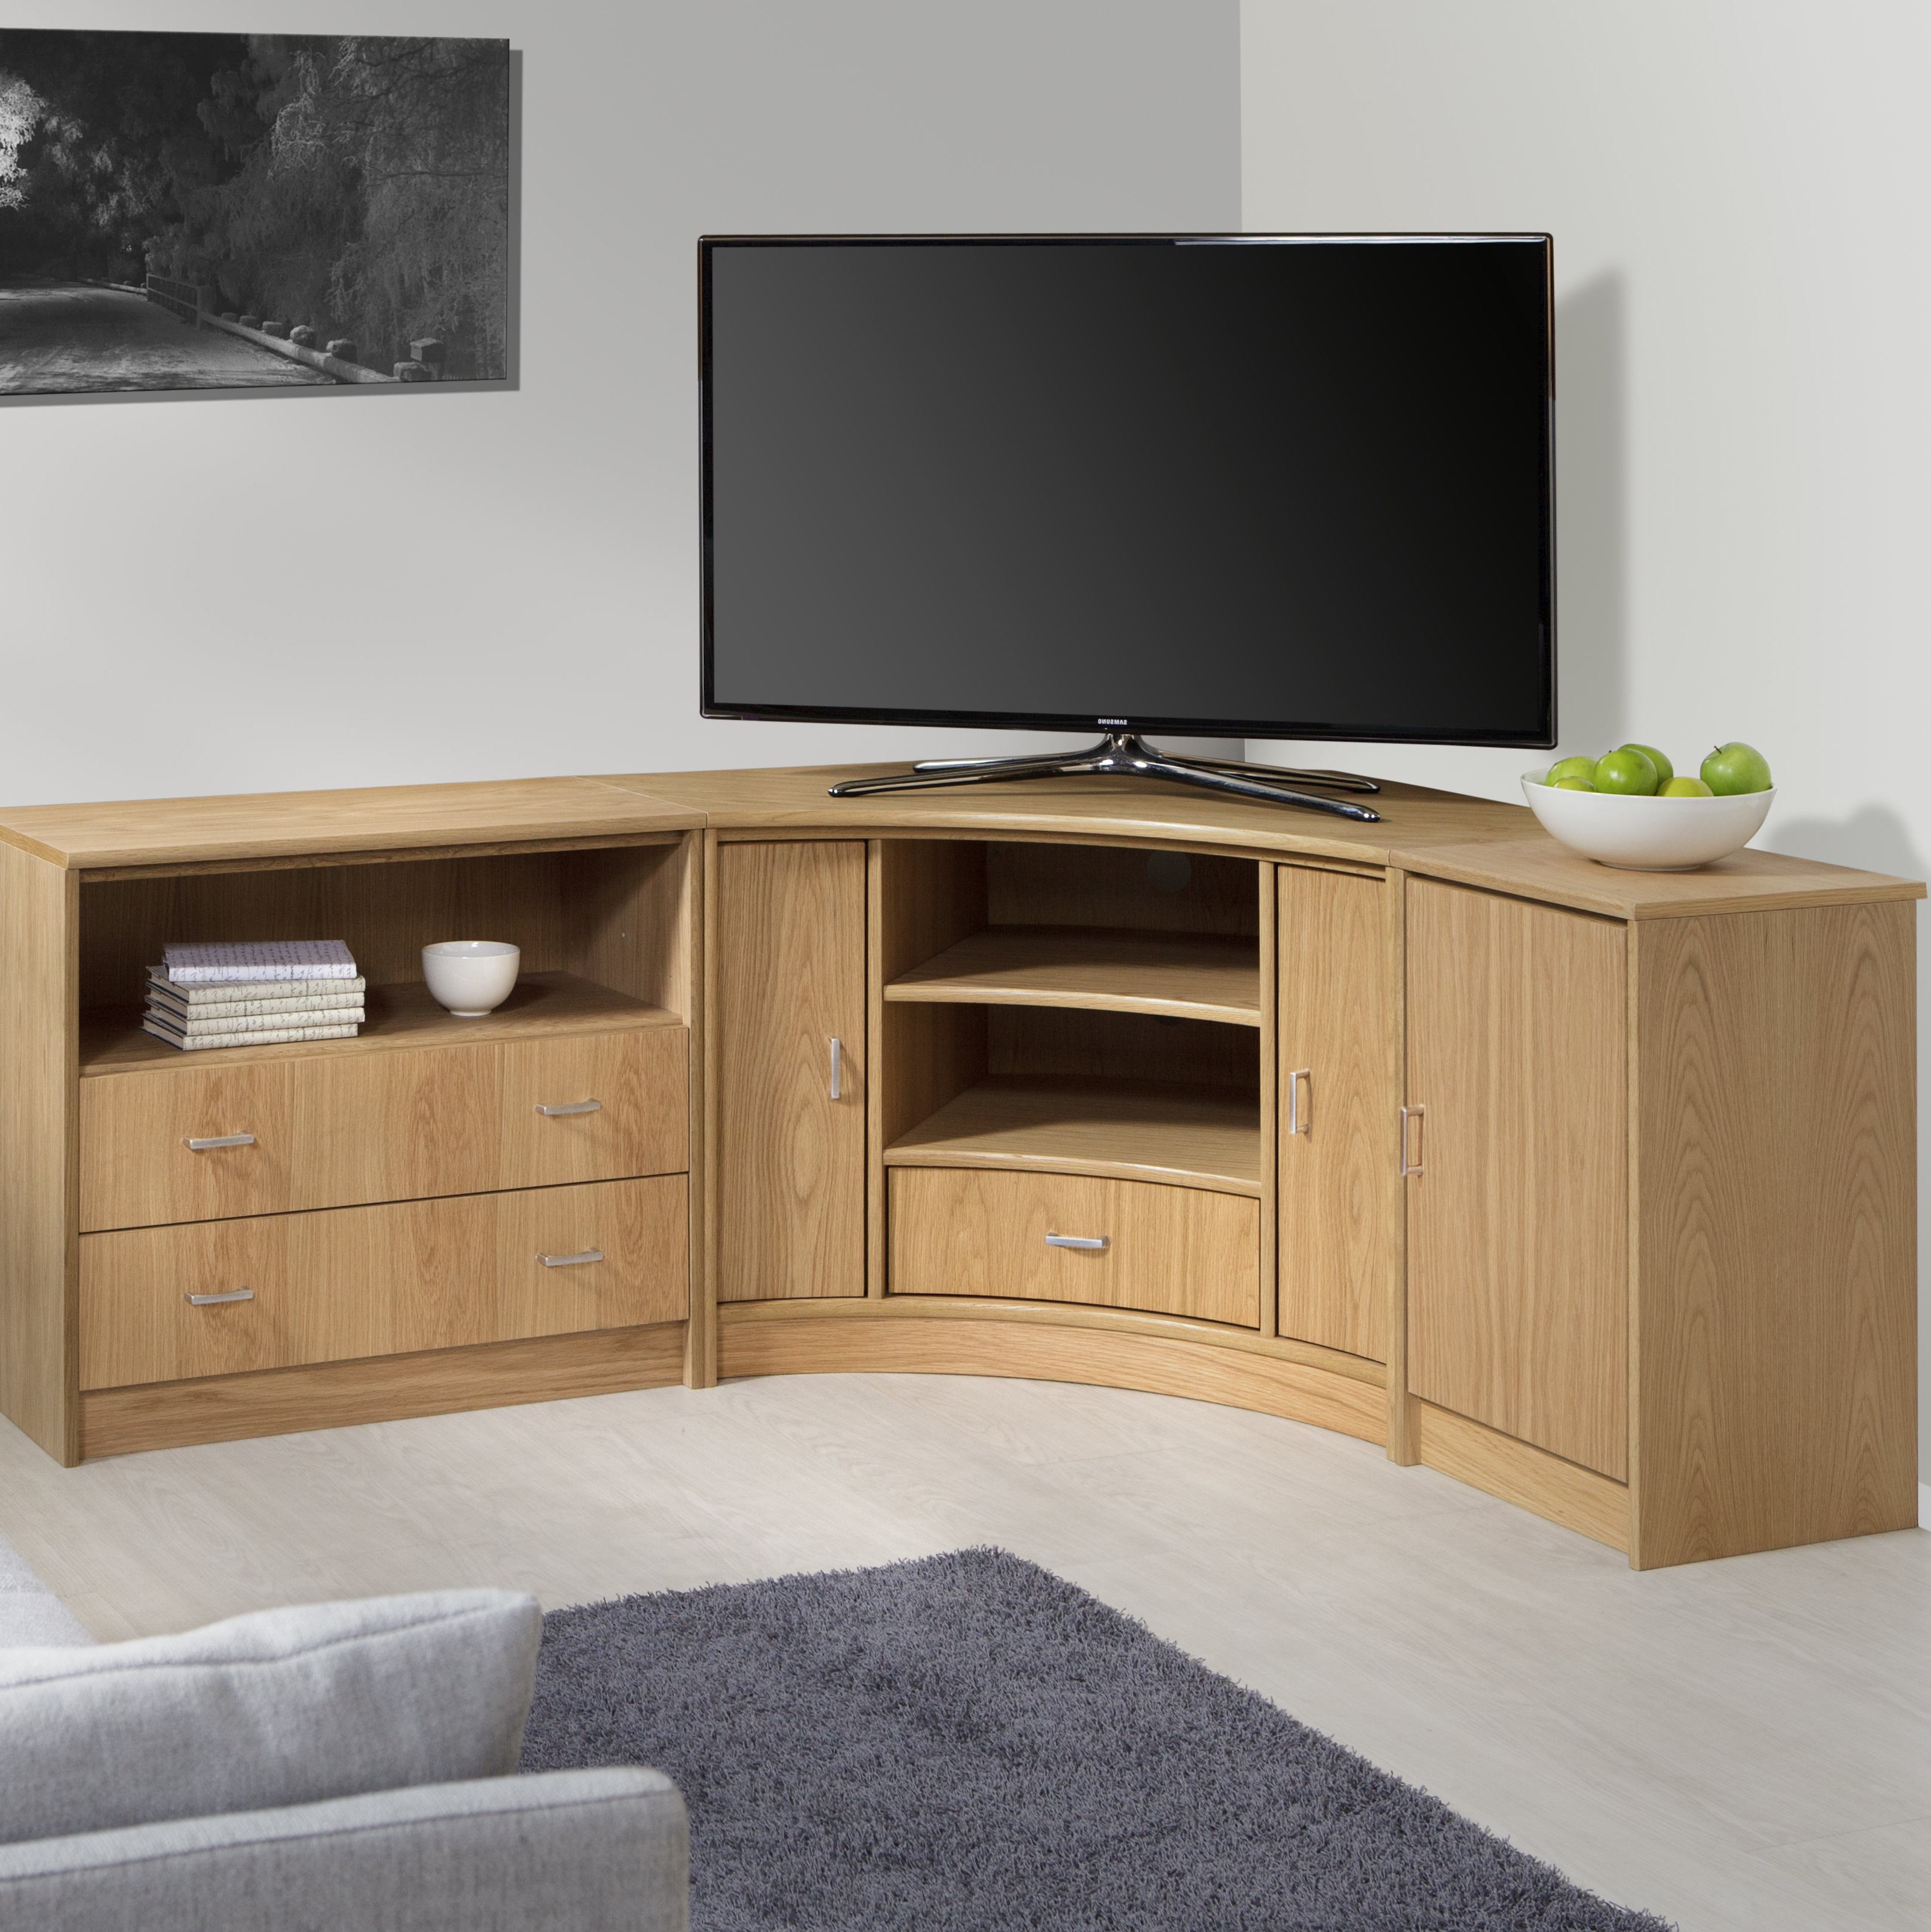 Abbot 60 Inch Tv Stands Within Favorite Marlow Home Co. Tv Stands & Entertainment Units You'll Love (Gallery 15 of 20)